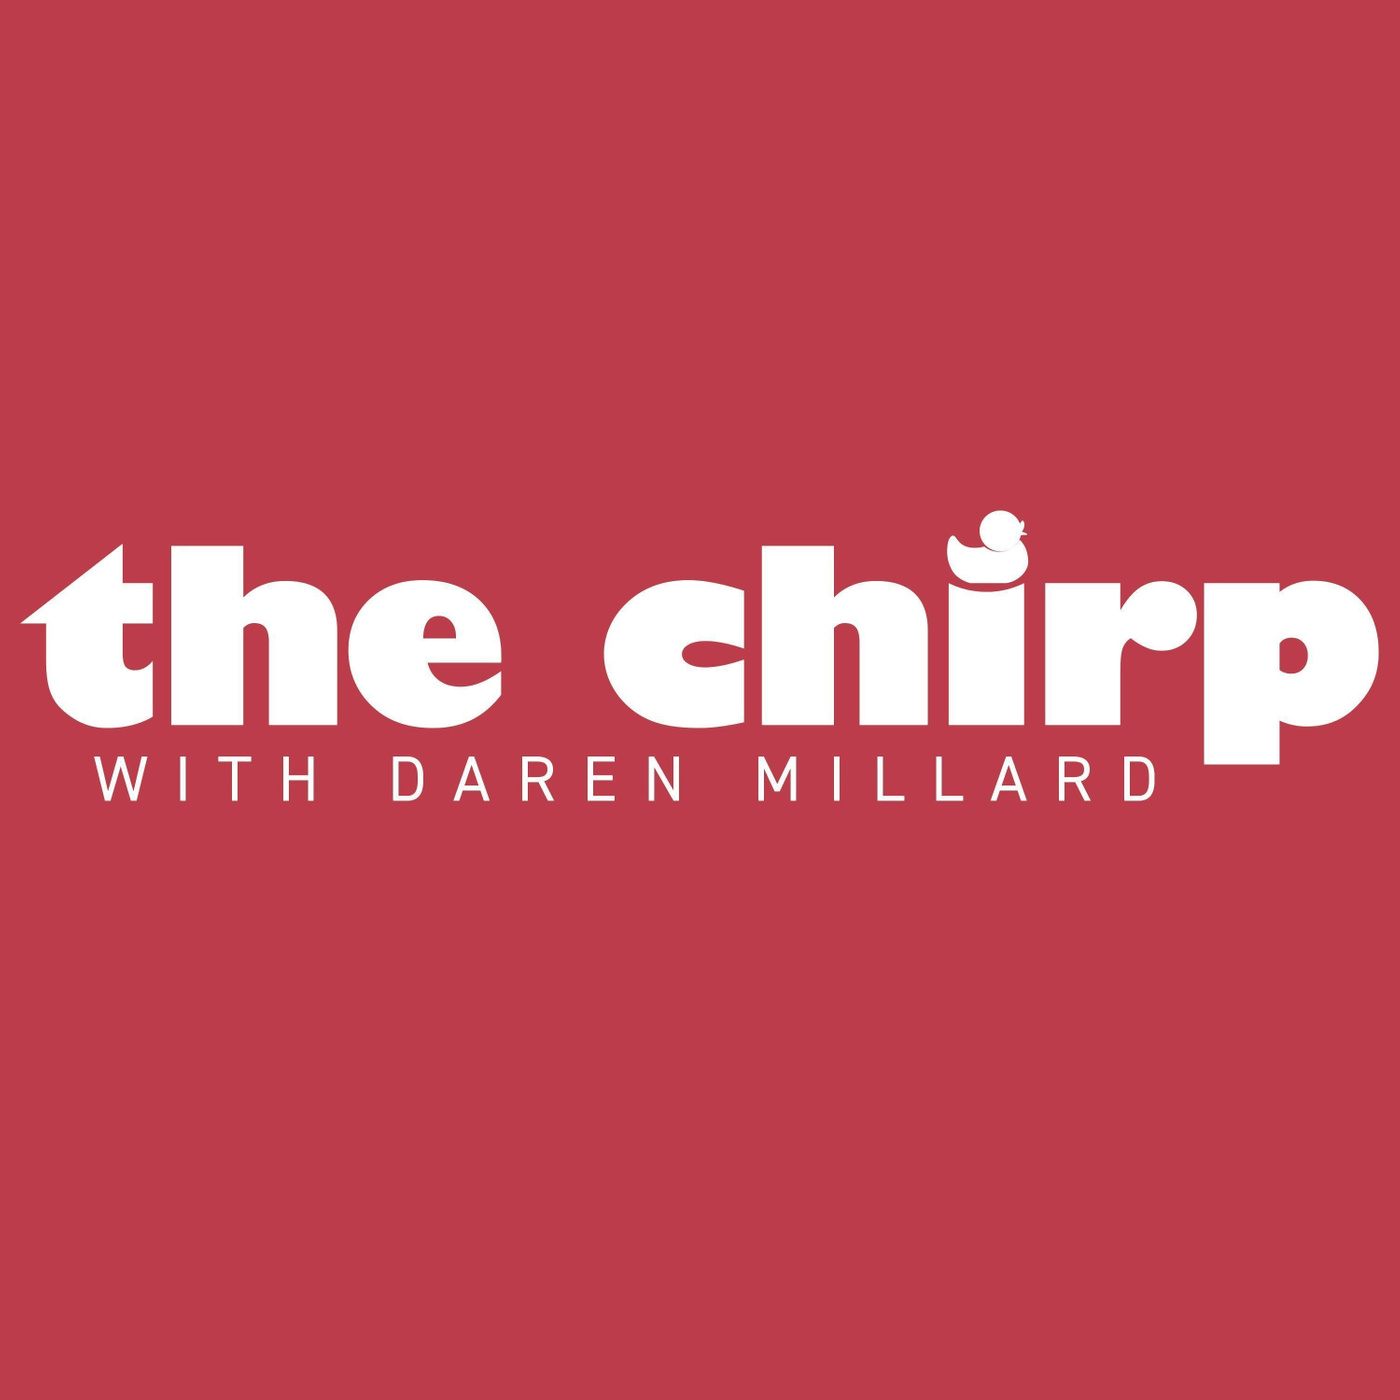 #25 The Chirp With Daren Millard ft John Cooper — Dean Blundell's Sports, News, Podcast Network